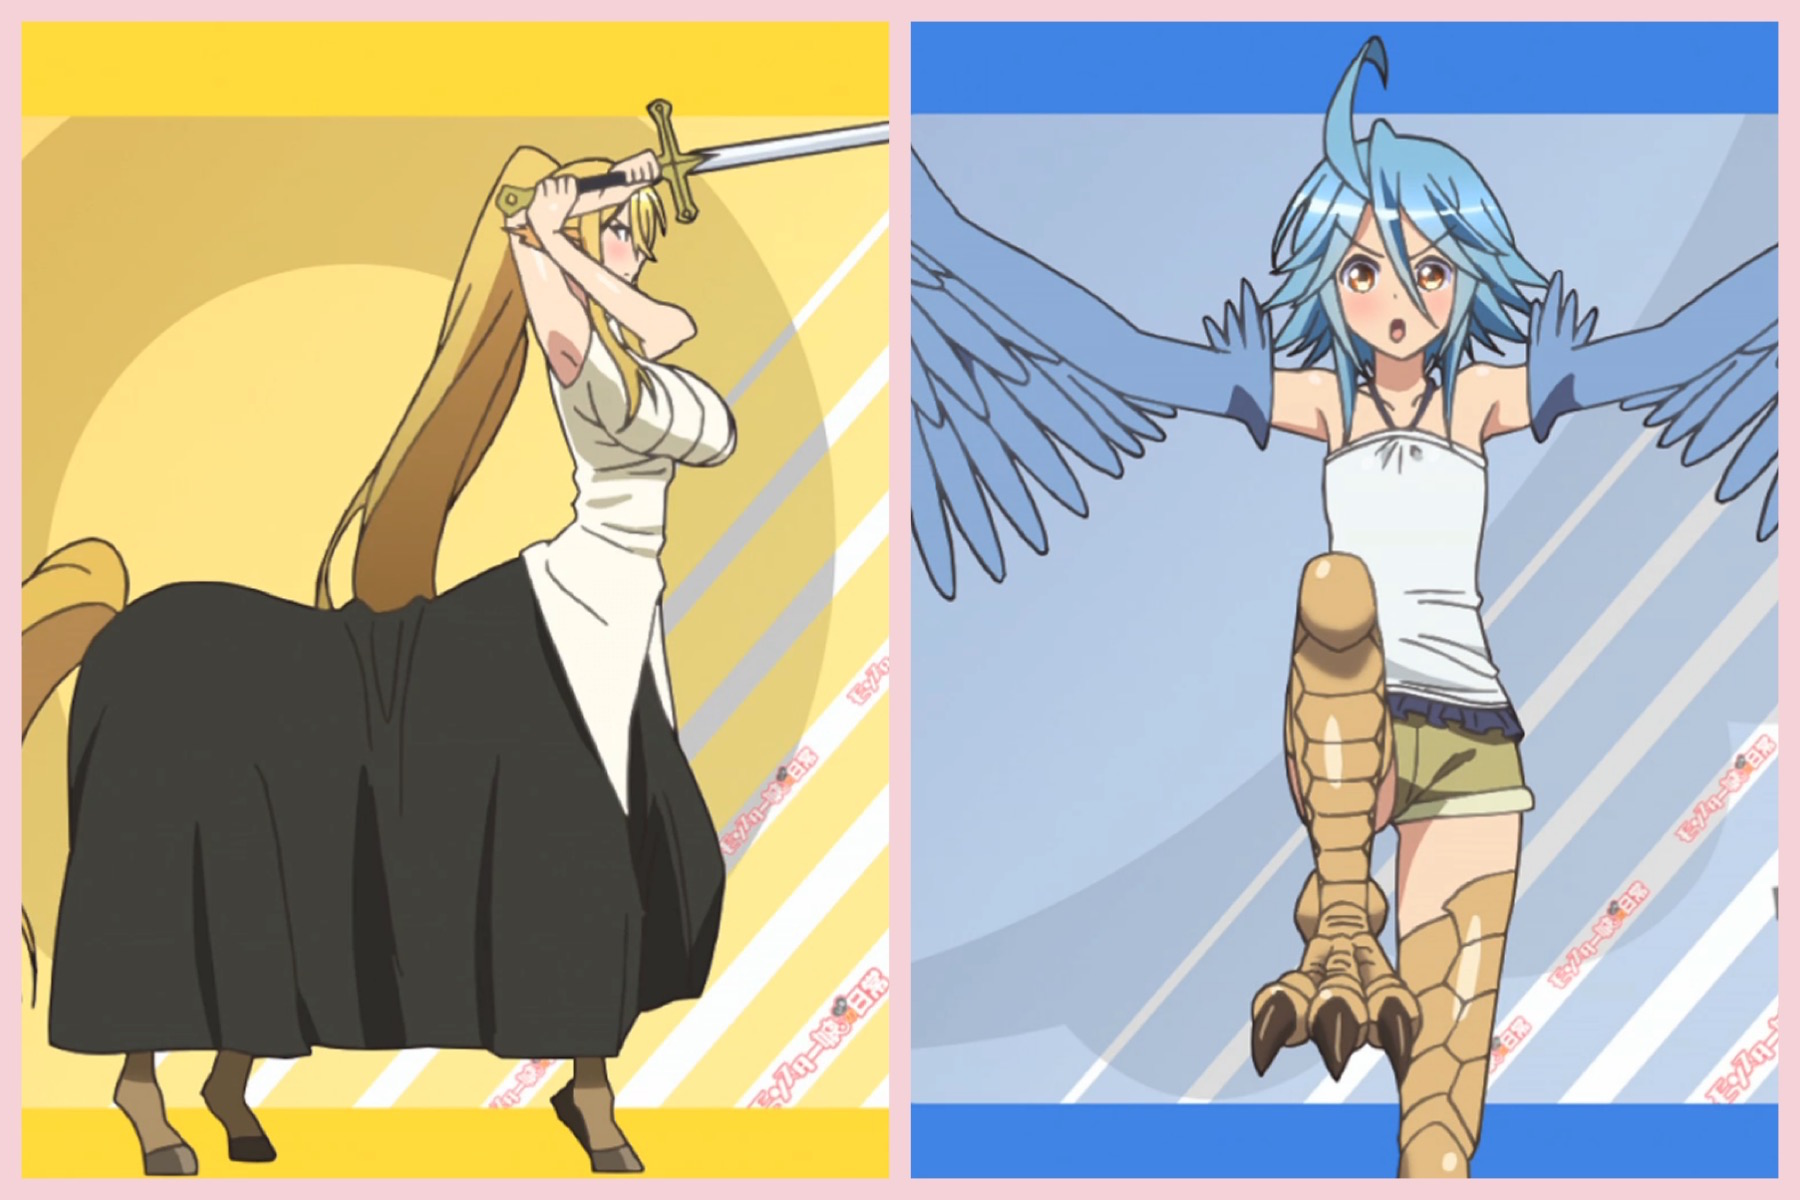 Cerea the Centaur and Papi the Harpy